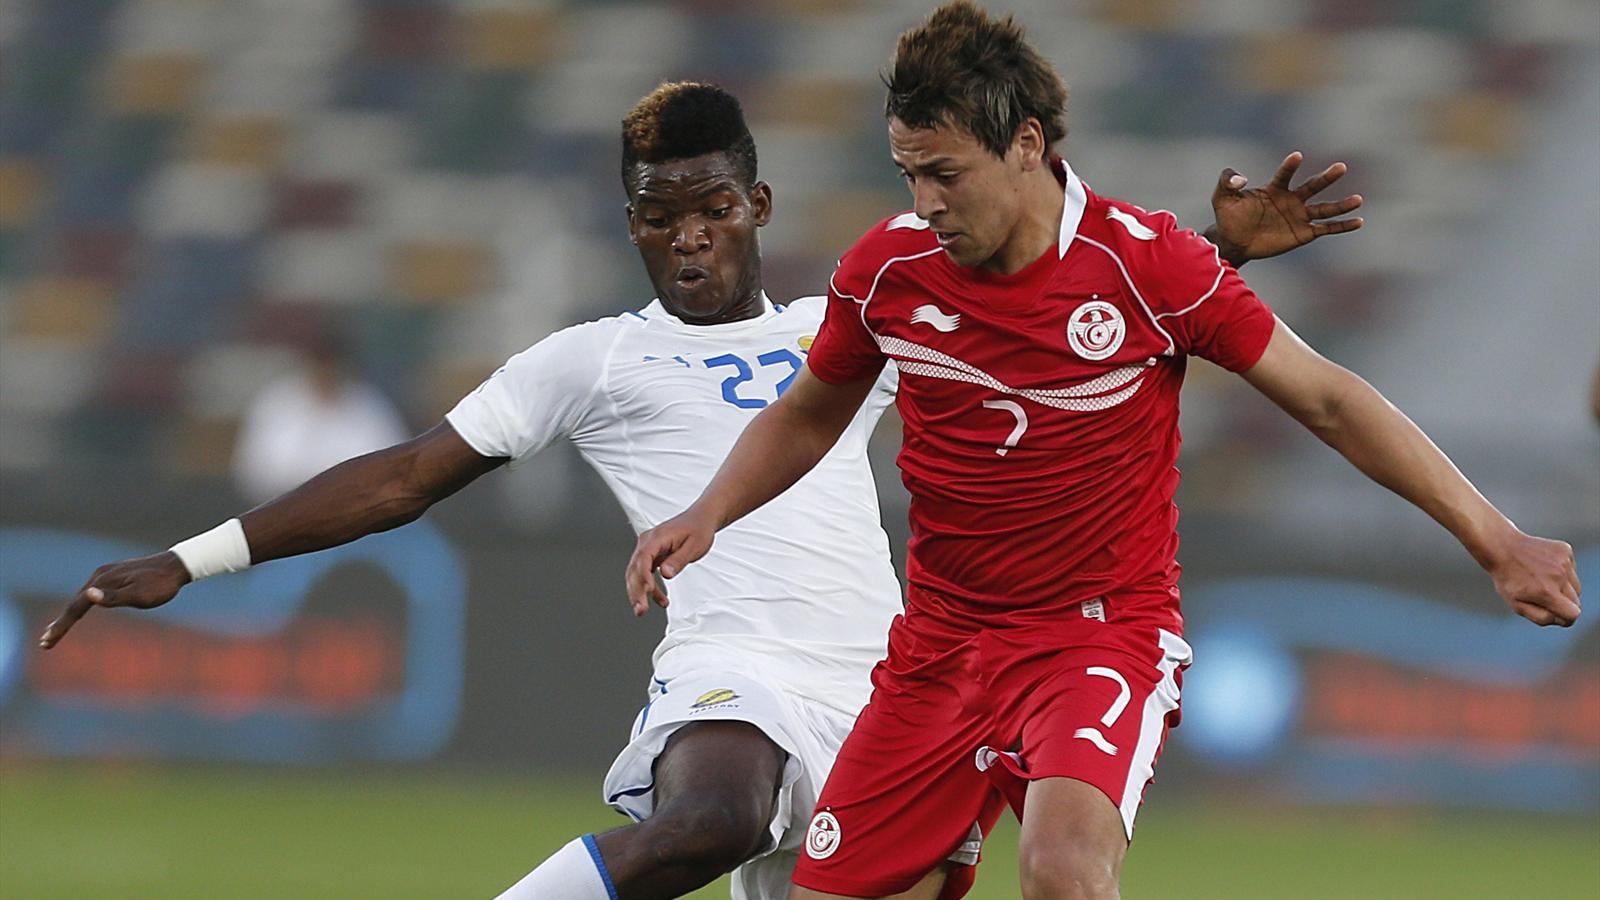 Match Tunisie vs Sénégal en direct live streaming